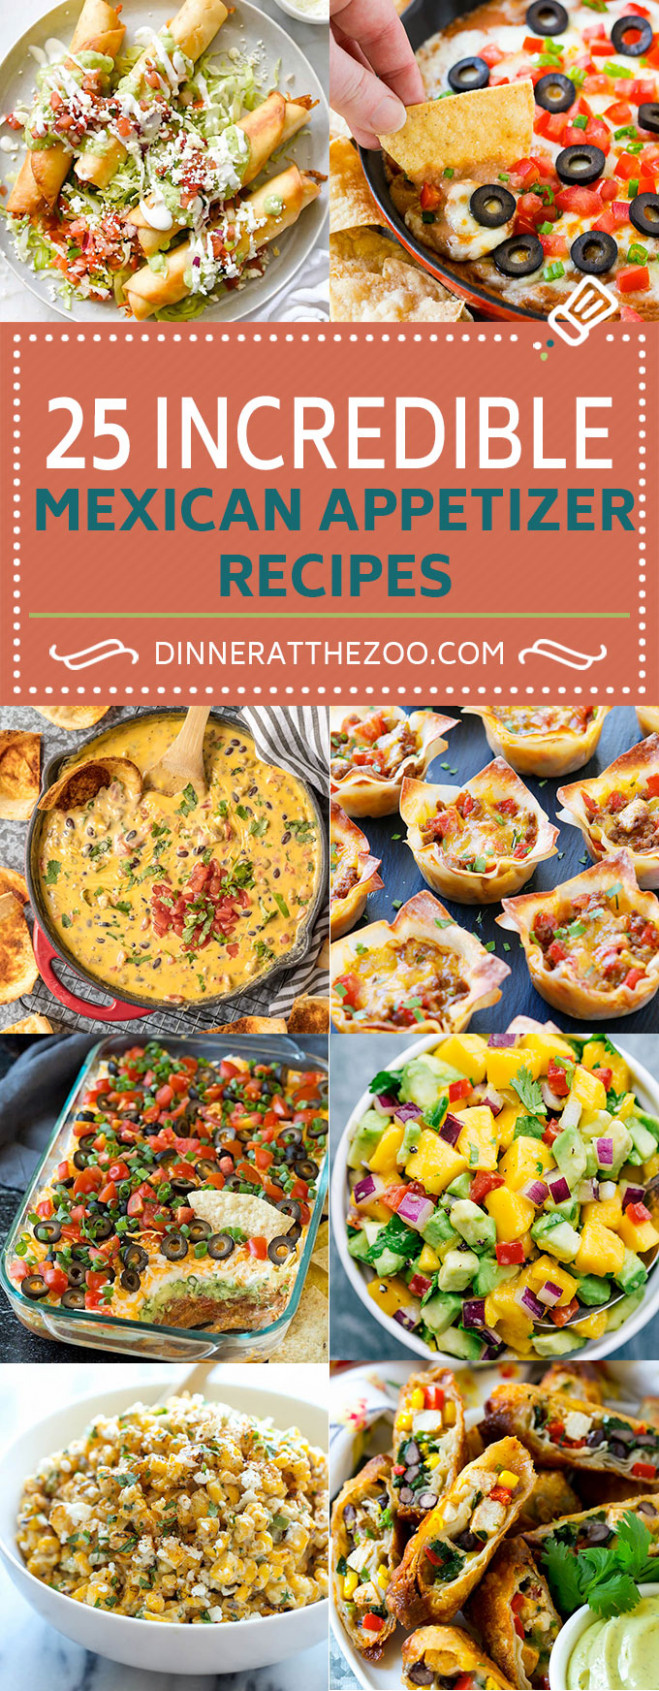 11 Incredible Mexican Appetizer Recipes - Dinner At The Zoo - Dinner Recipes Mexican